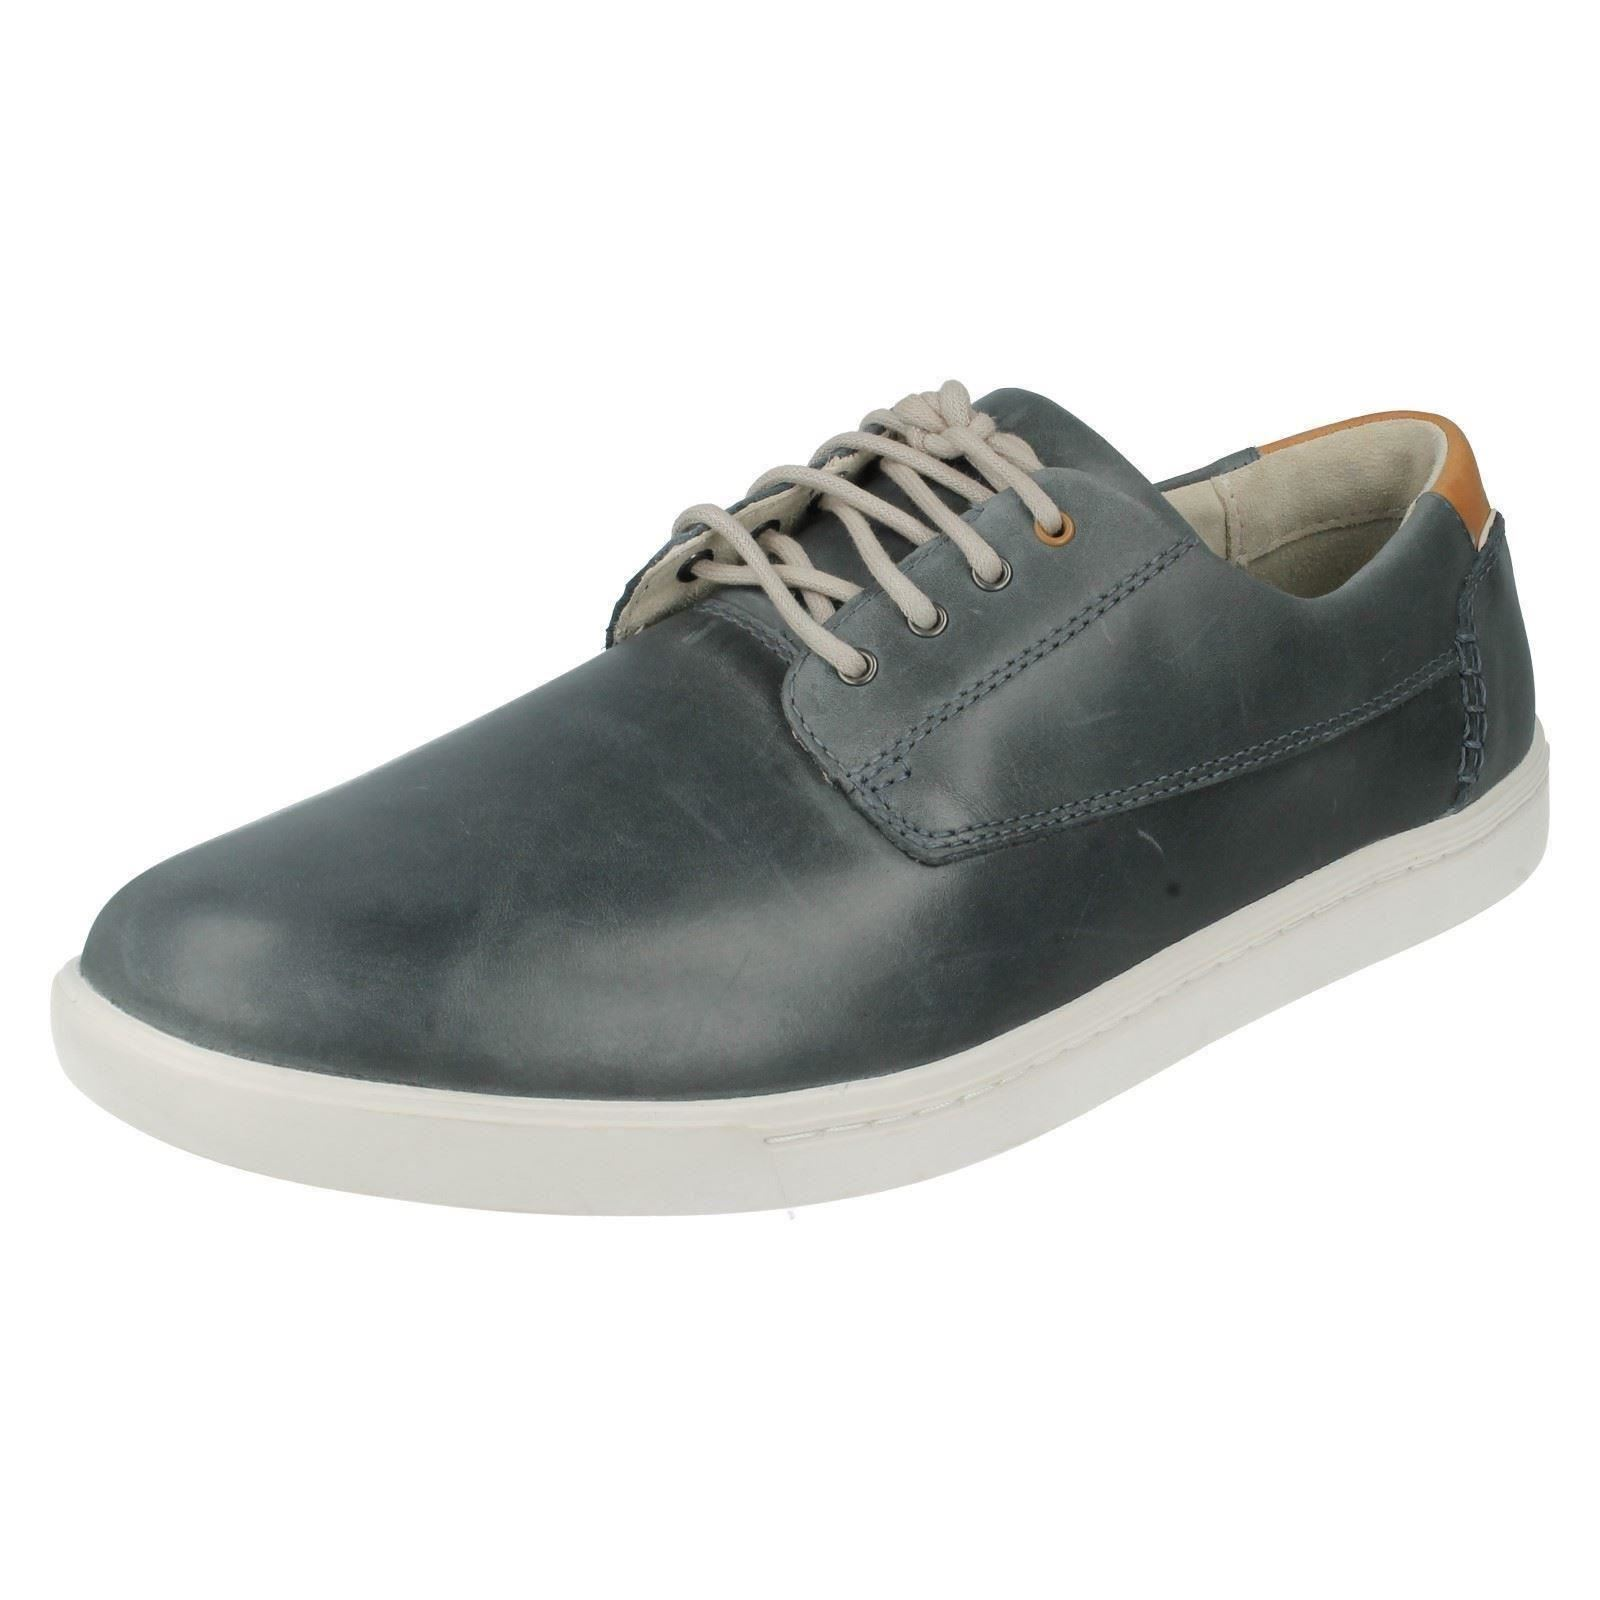 s clarks midcut casual sporty lace up shoes newood fly